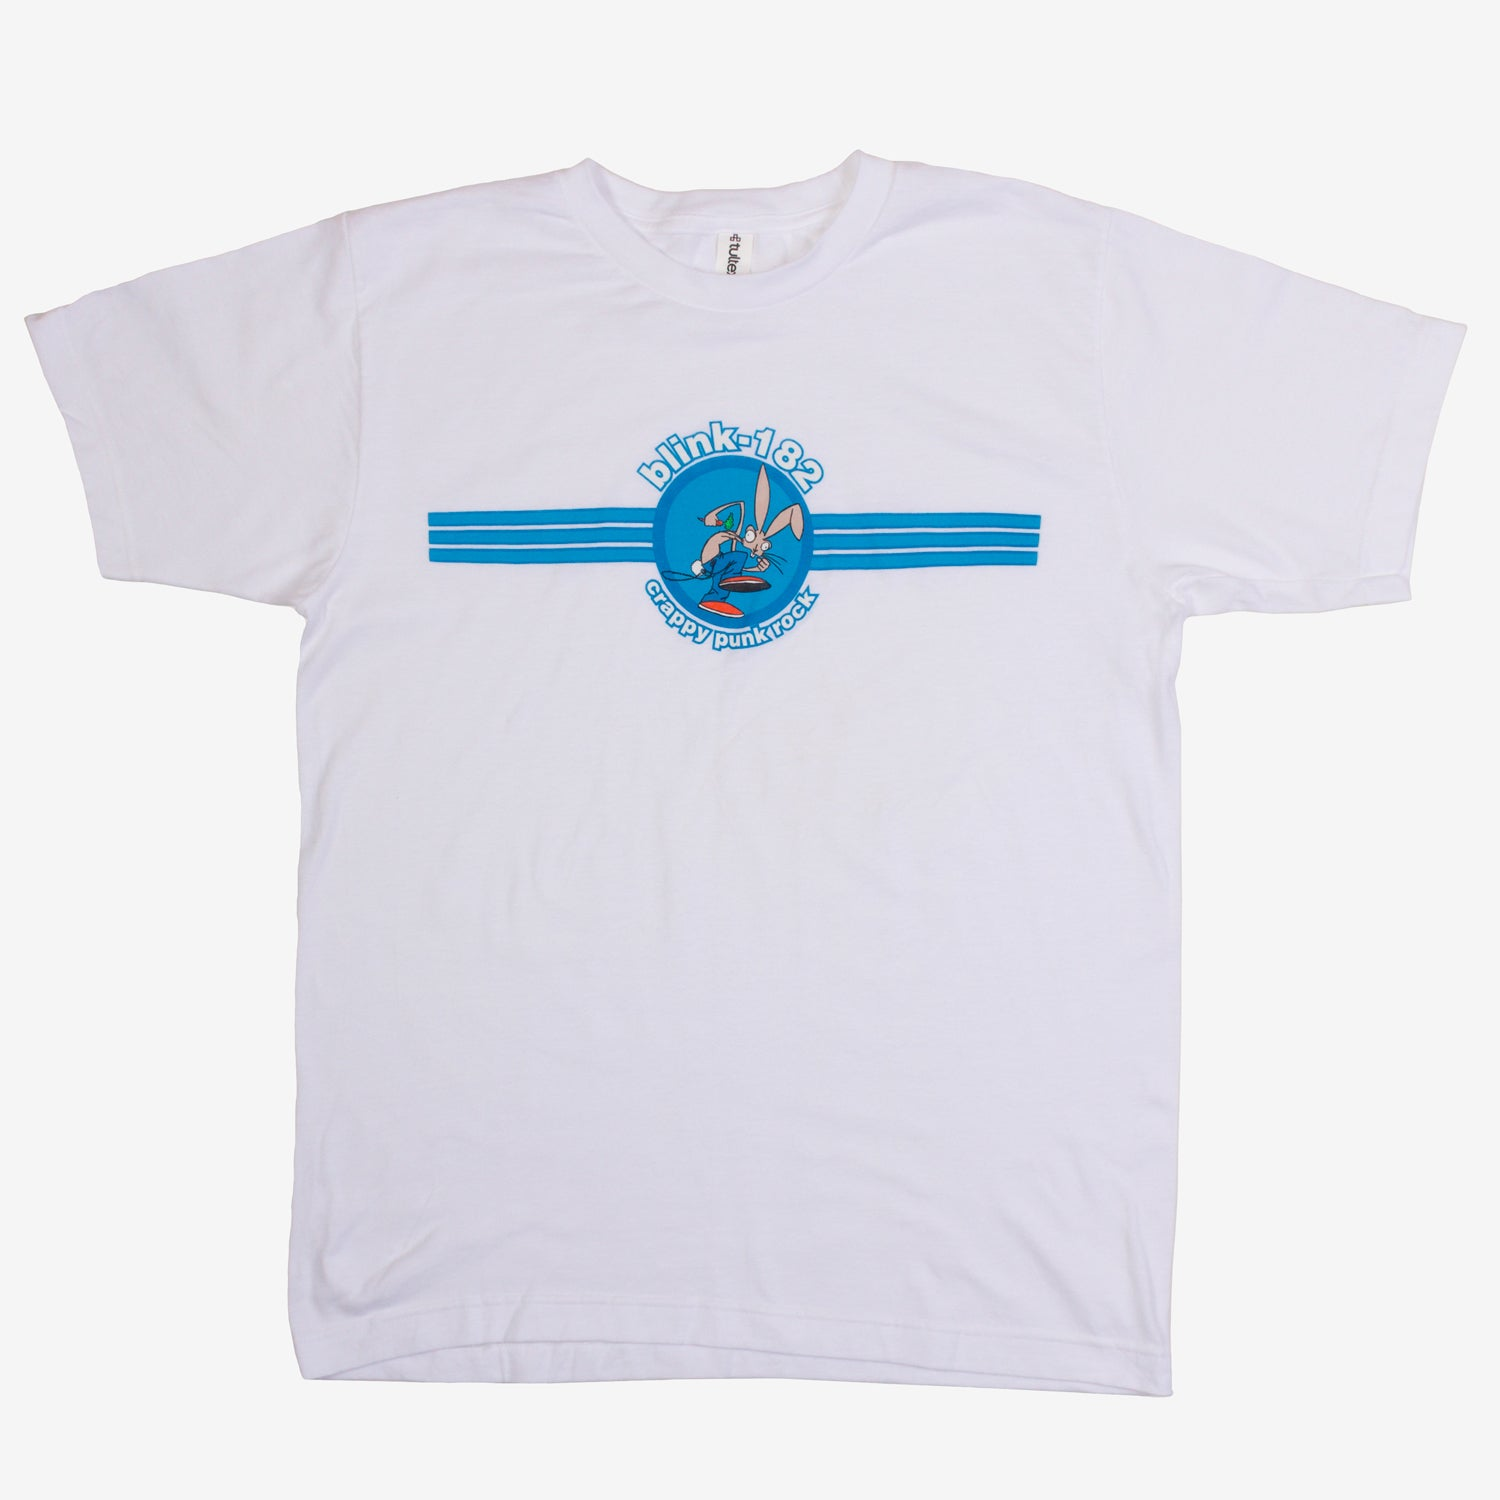 blink-182 OG Crappy Tee White